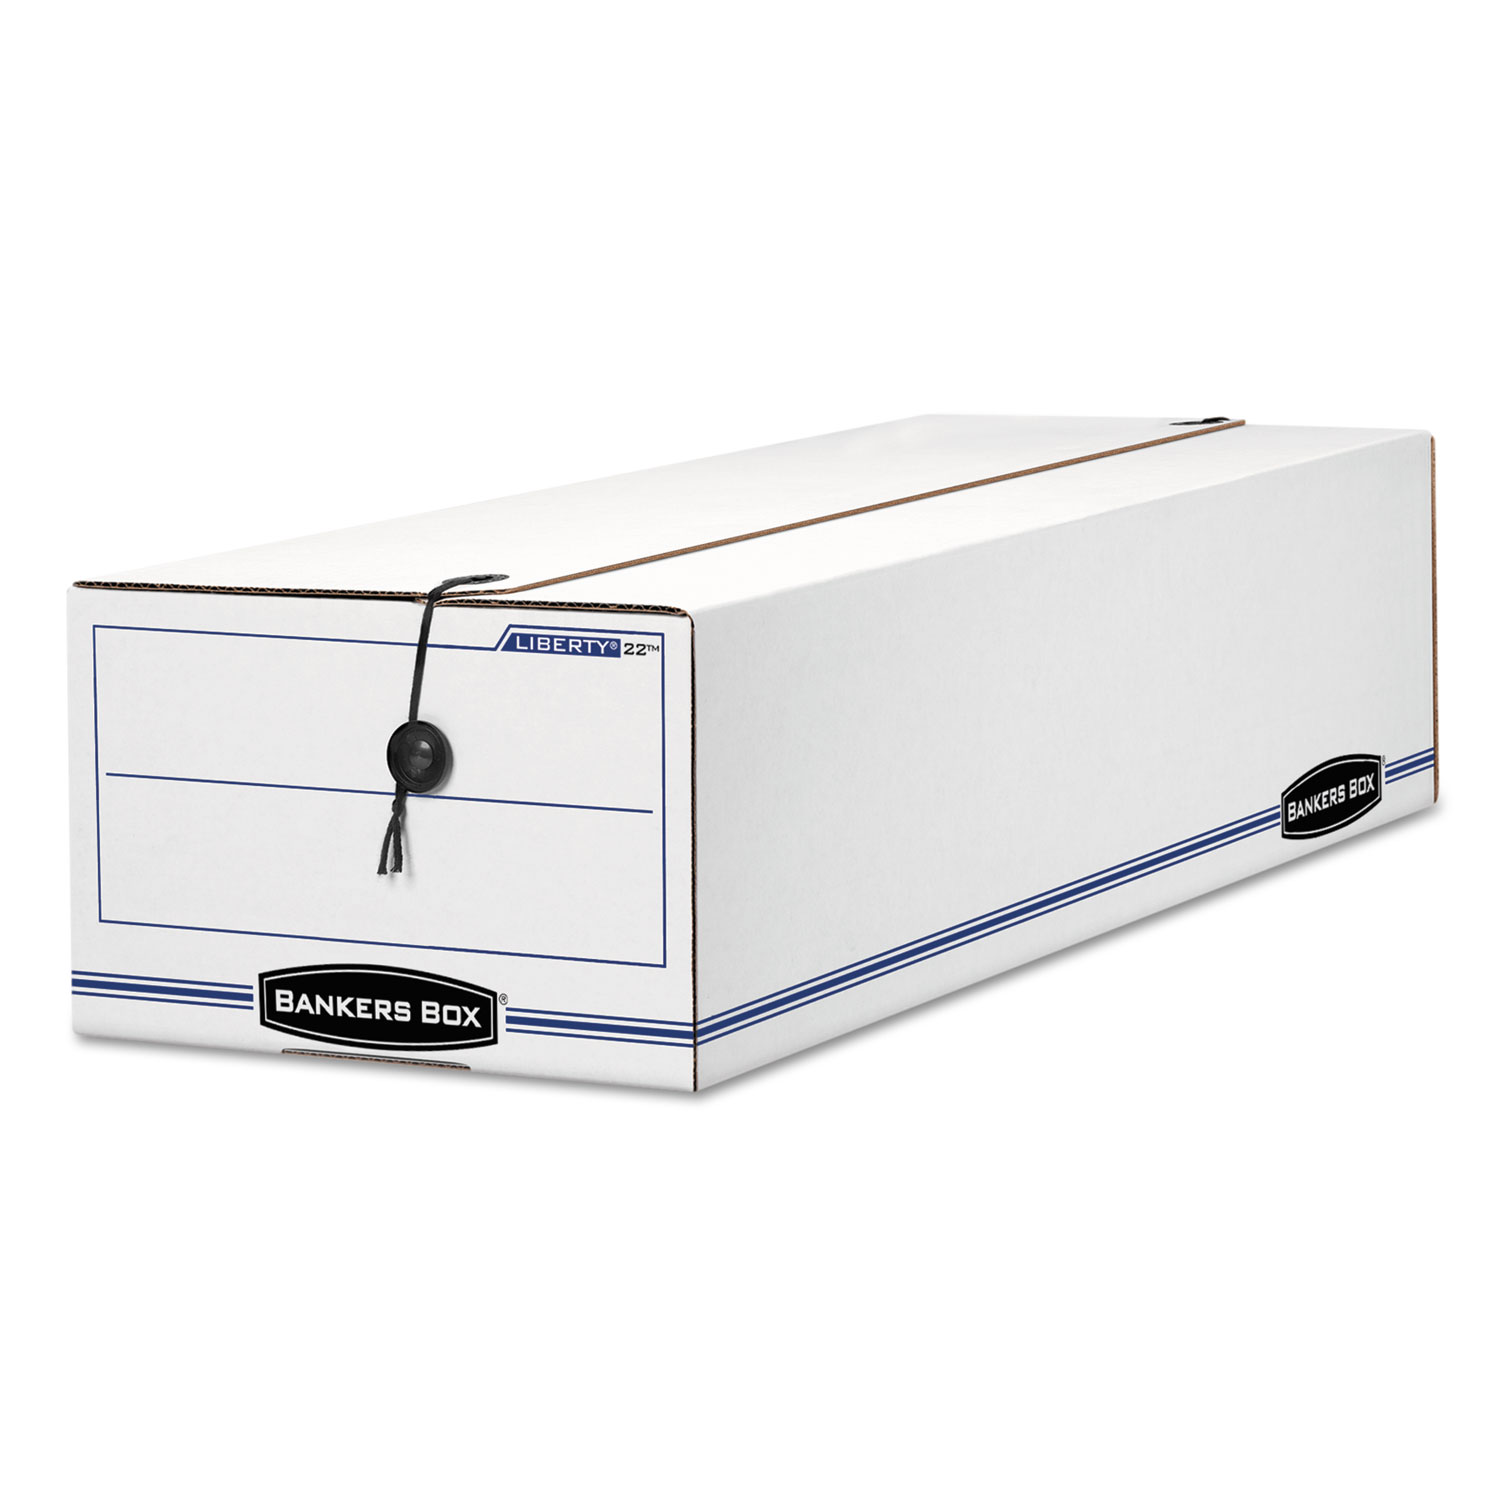 "LIBERTY Check and Form Boxes, 9.75"" x 23.75"" x 6.25"", White/Blue, 12/Carton"